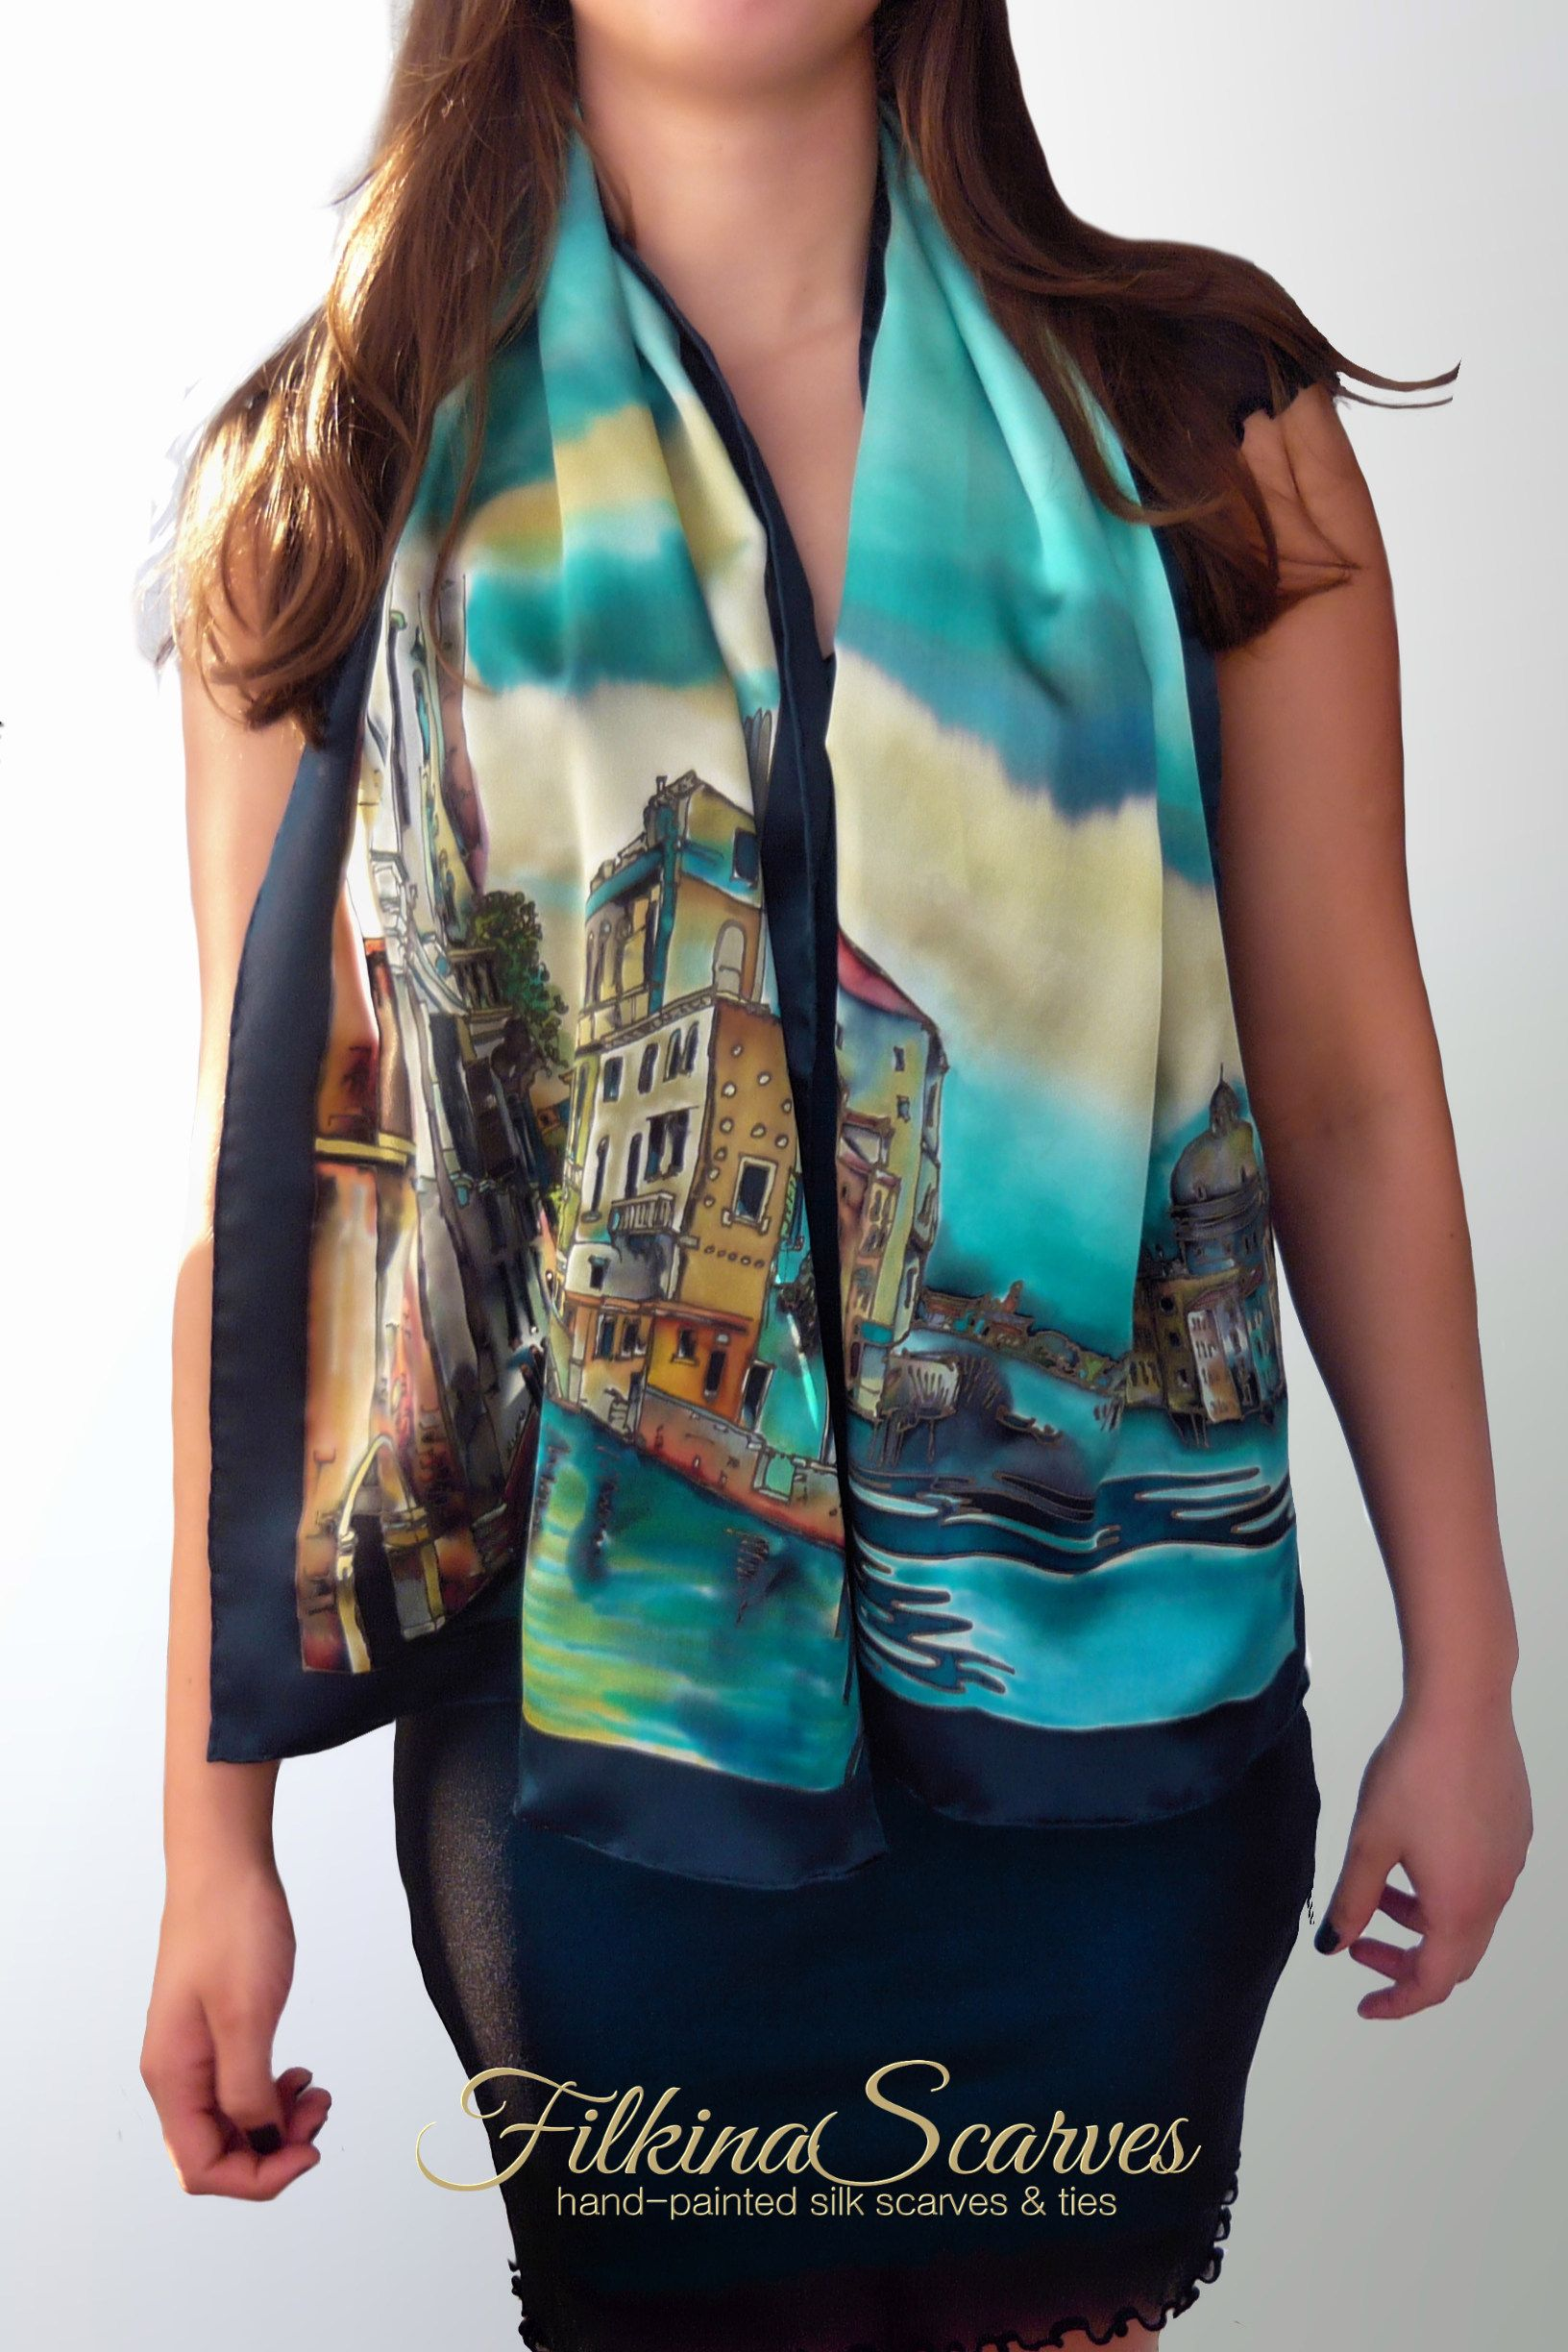 Silk Art. The Perfect Women's Gifts - Unique Hand-Painted Silk Scarves from FilkinaScarves - Venice -   15 dress Silk christmas gifts